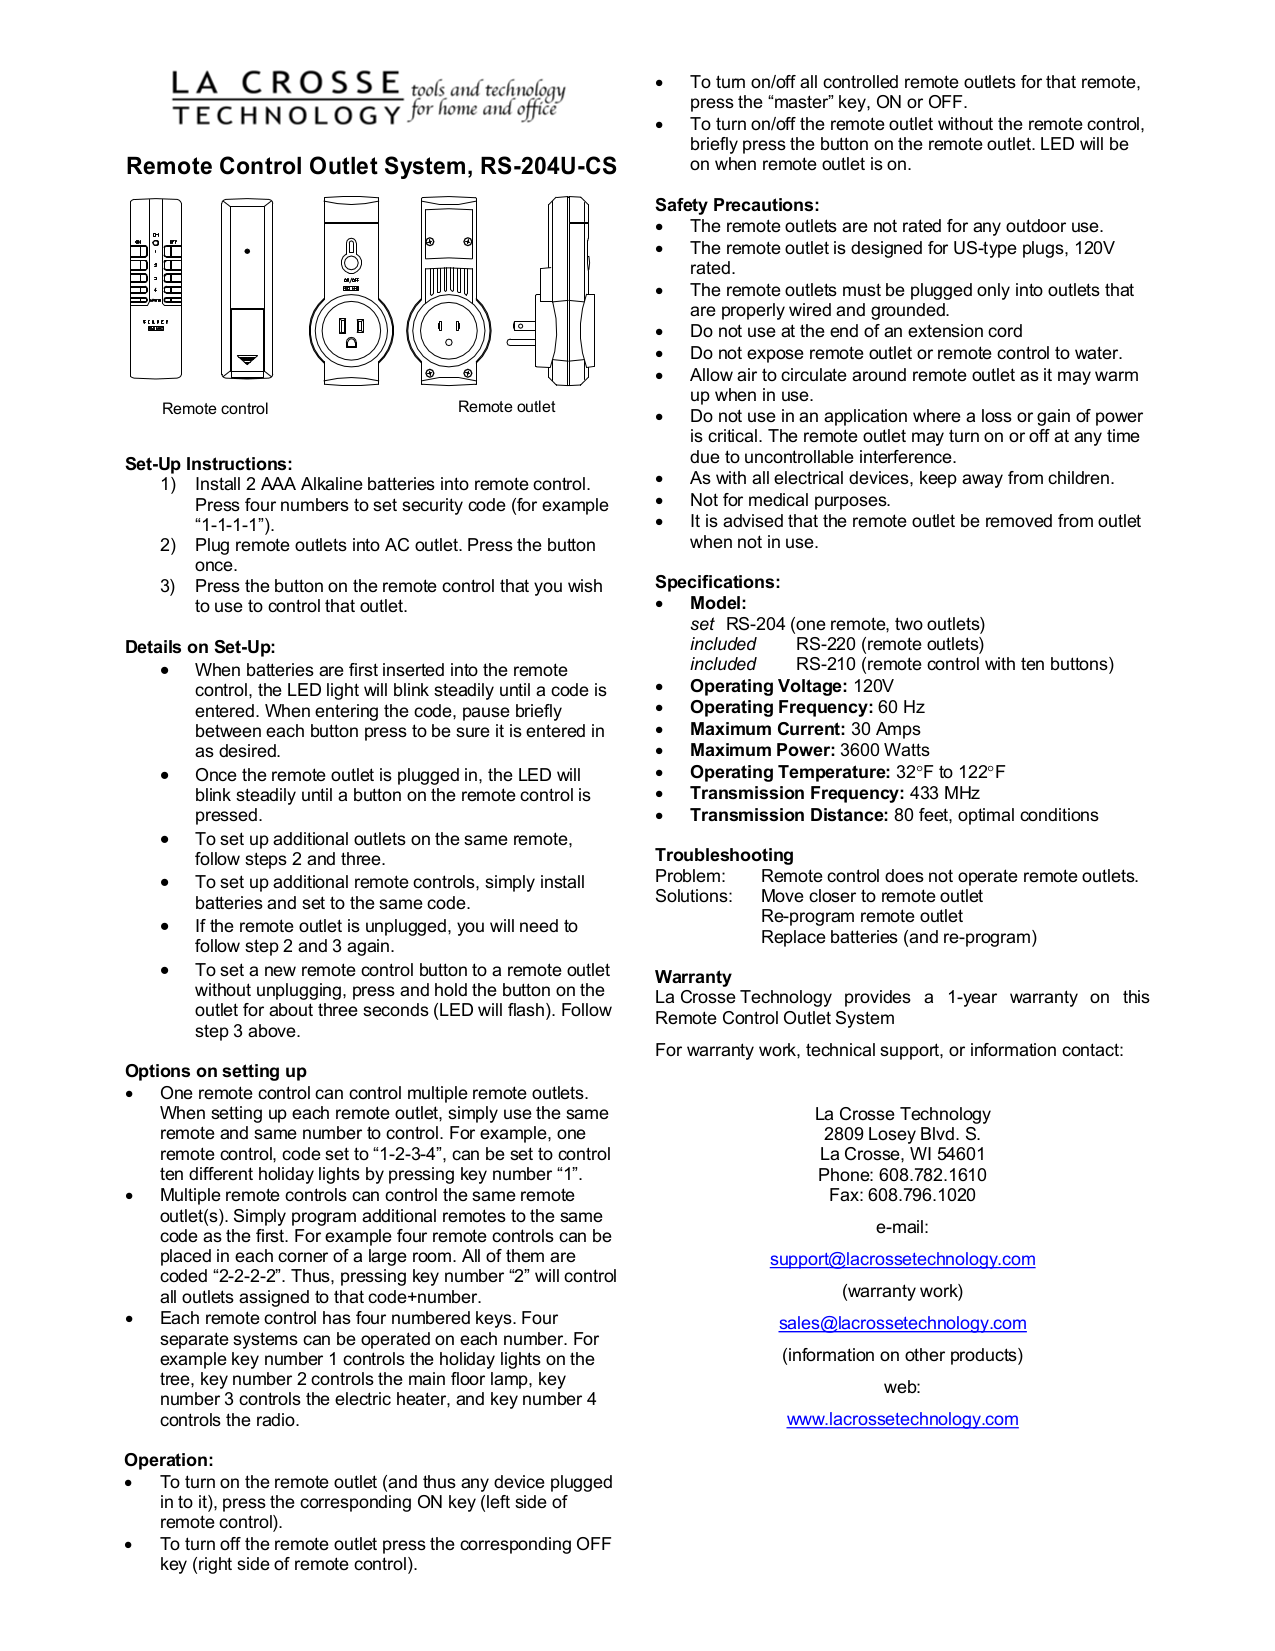 pdf for Lacrosse Remote Control RS-204 manual